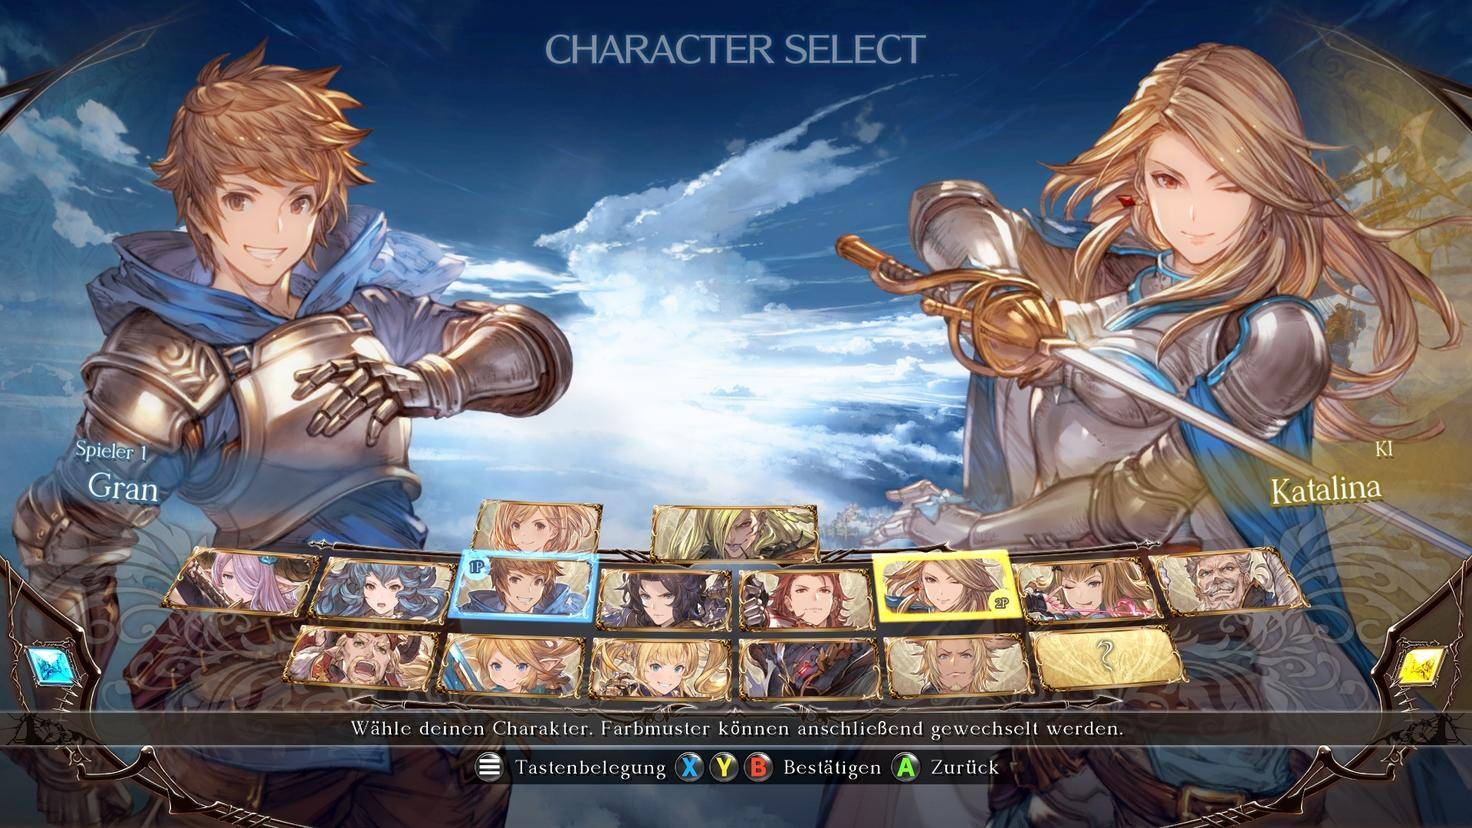 granblue-fantasy-versus-character-select